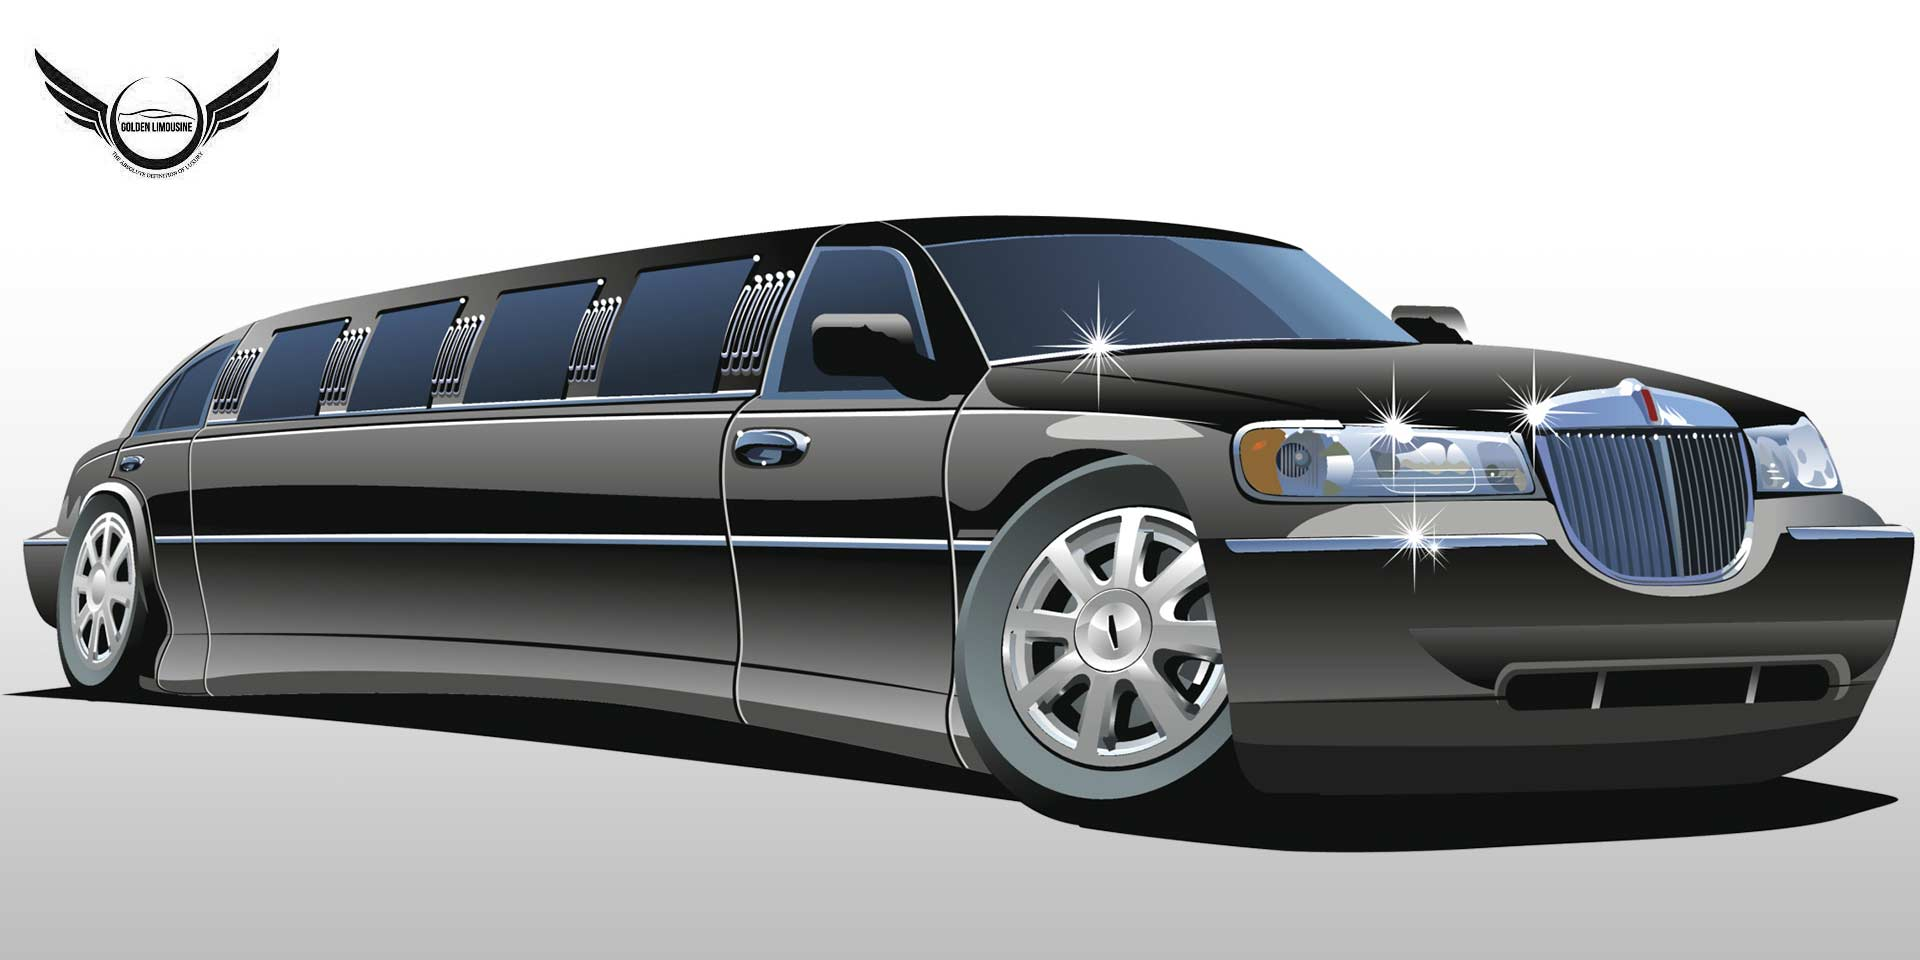 top limo car rental services golden limousine uae luxury car in